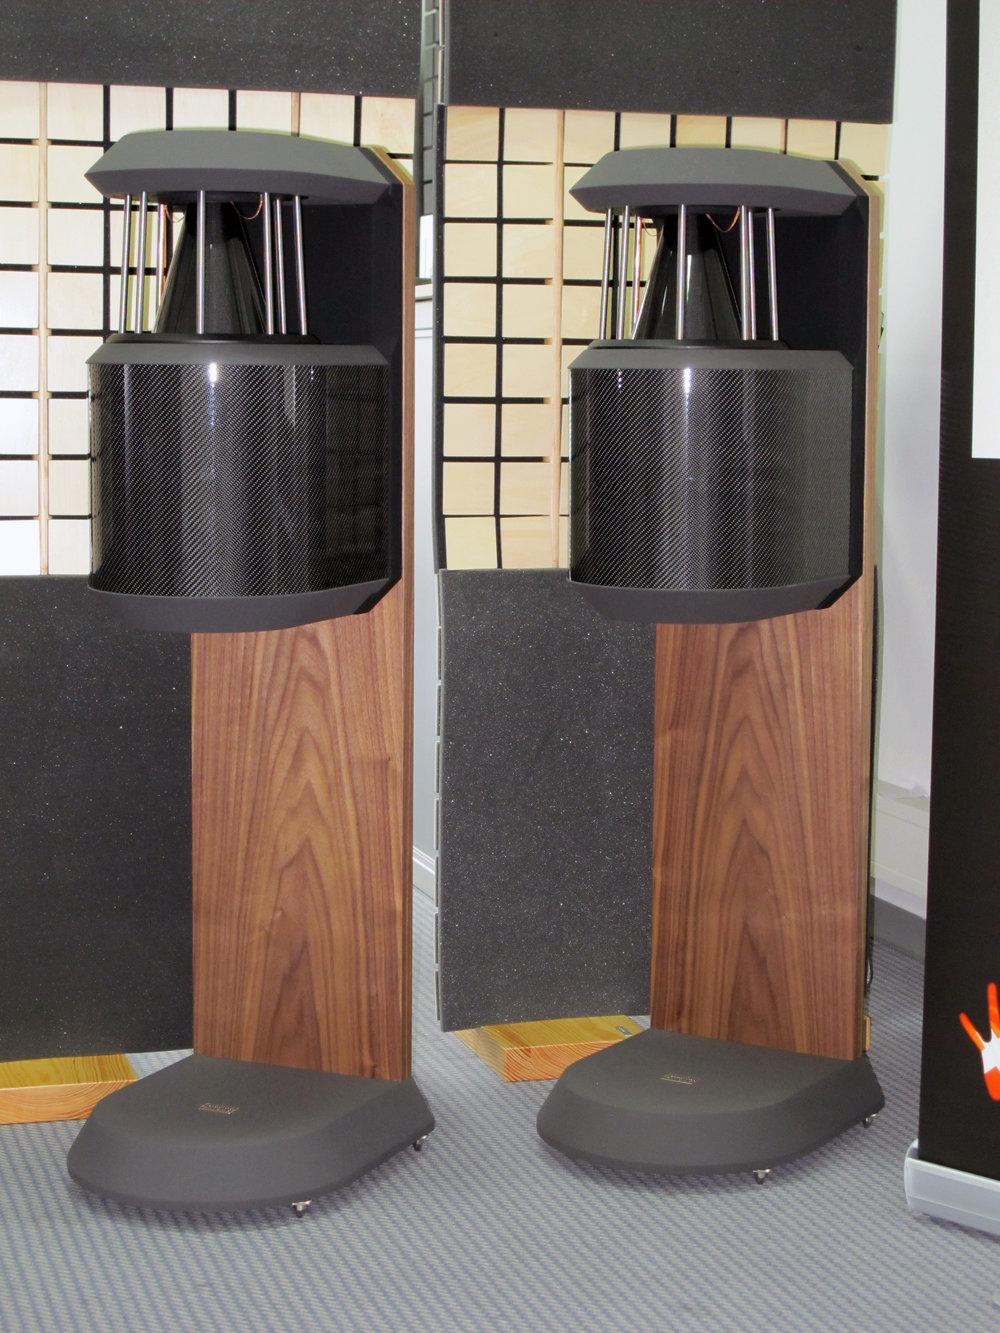 PQS-100 Plus loudspeakers | Munich Hi-Fi Show 2010, Germany